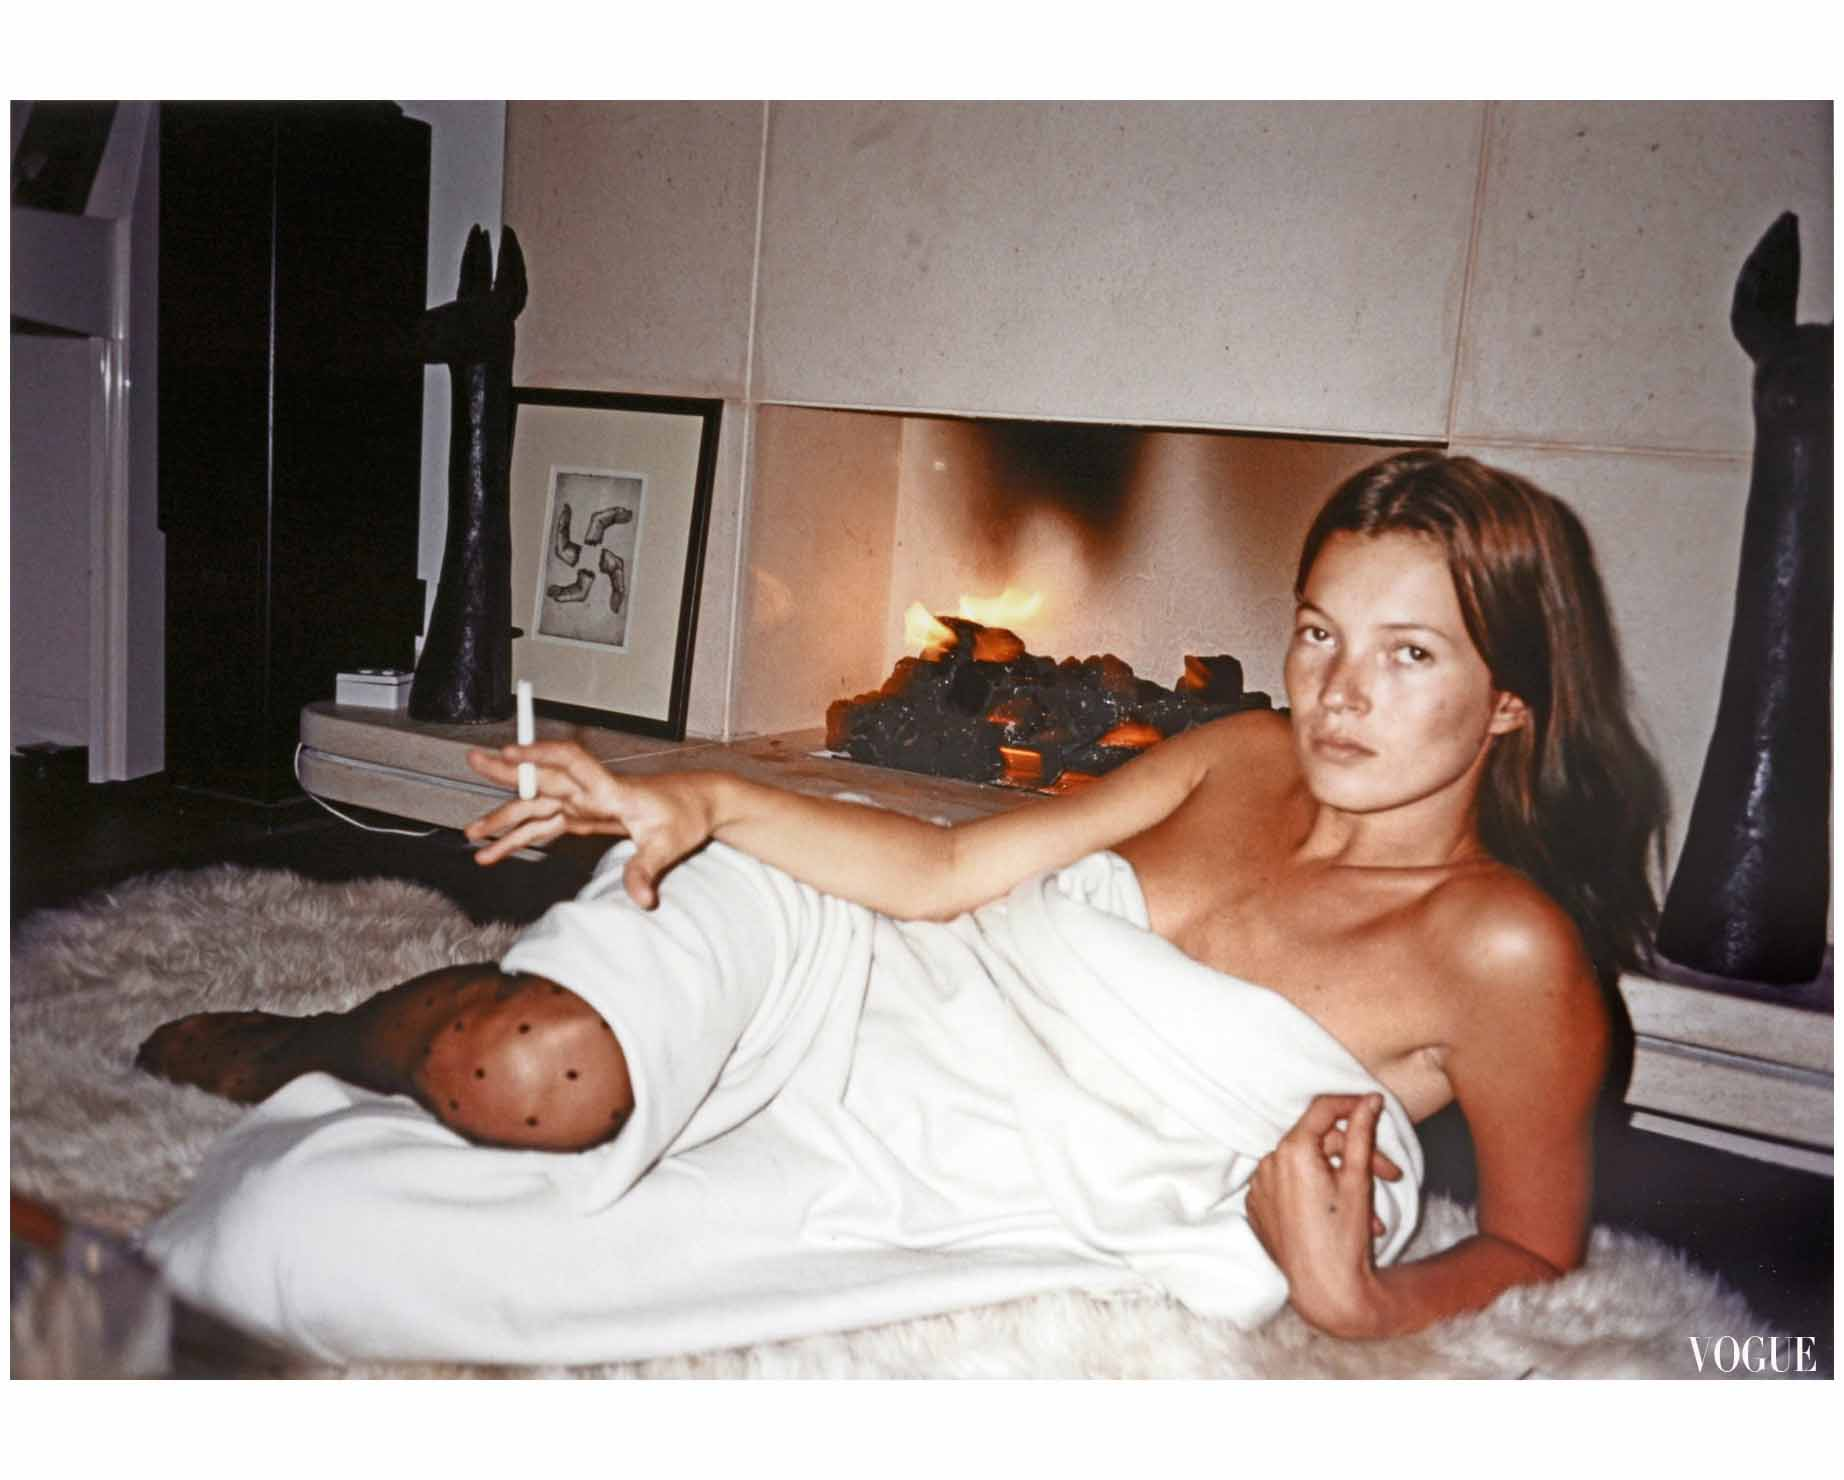 https://pleasurephoto.files.wordpress.com/2015/12/kate-moss-vogue-dec-2000-juergen-teller.jpg